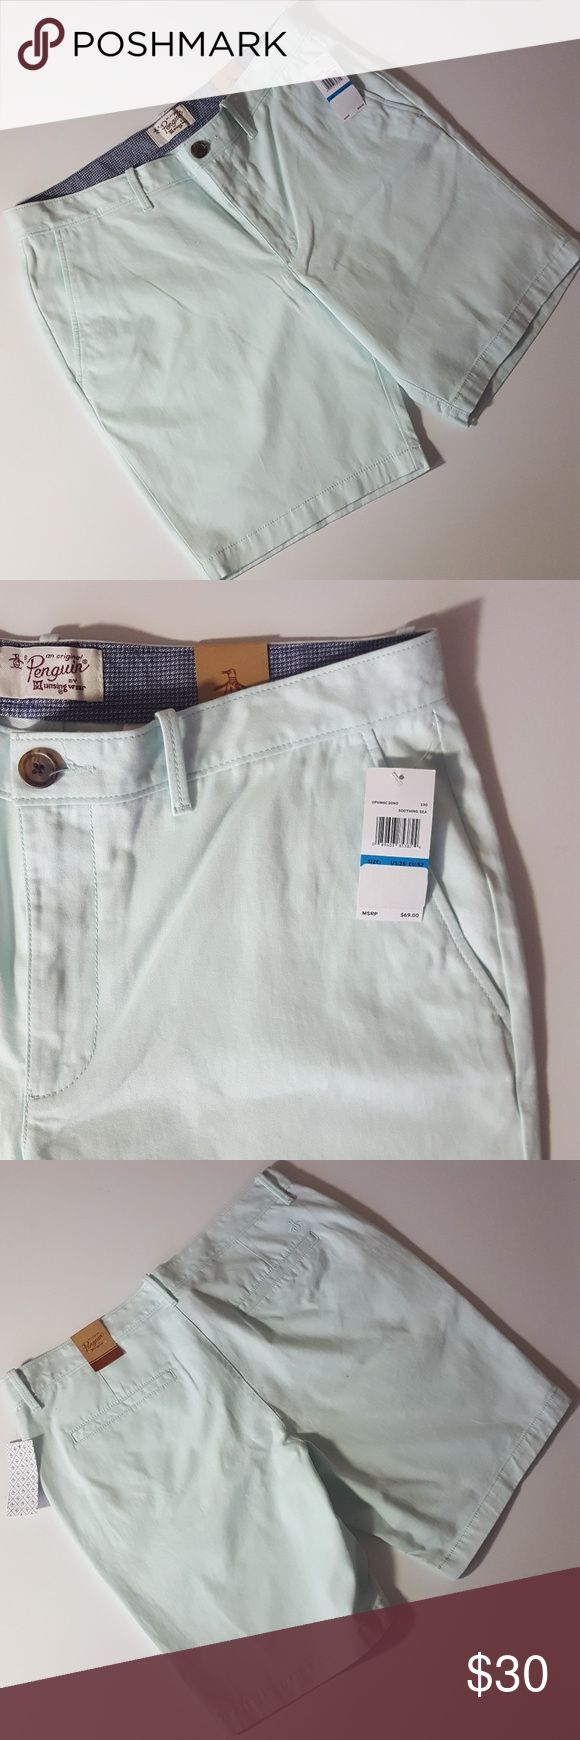 ♂ NWT ORIGINAL PENGUIN mens mint green shorts ✔ 100% authentic  ✔ Brand new and never worn  ✔ Original $69 MSRP tags attached   Check out my other Nike, Diesel, Under Armor, Ralph Lauren, Burberry, J Crew, Brooks Brothers, Cole Haan, Lacoste, and Sperry items. Original Penguin Shorts Flat Front